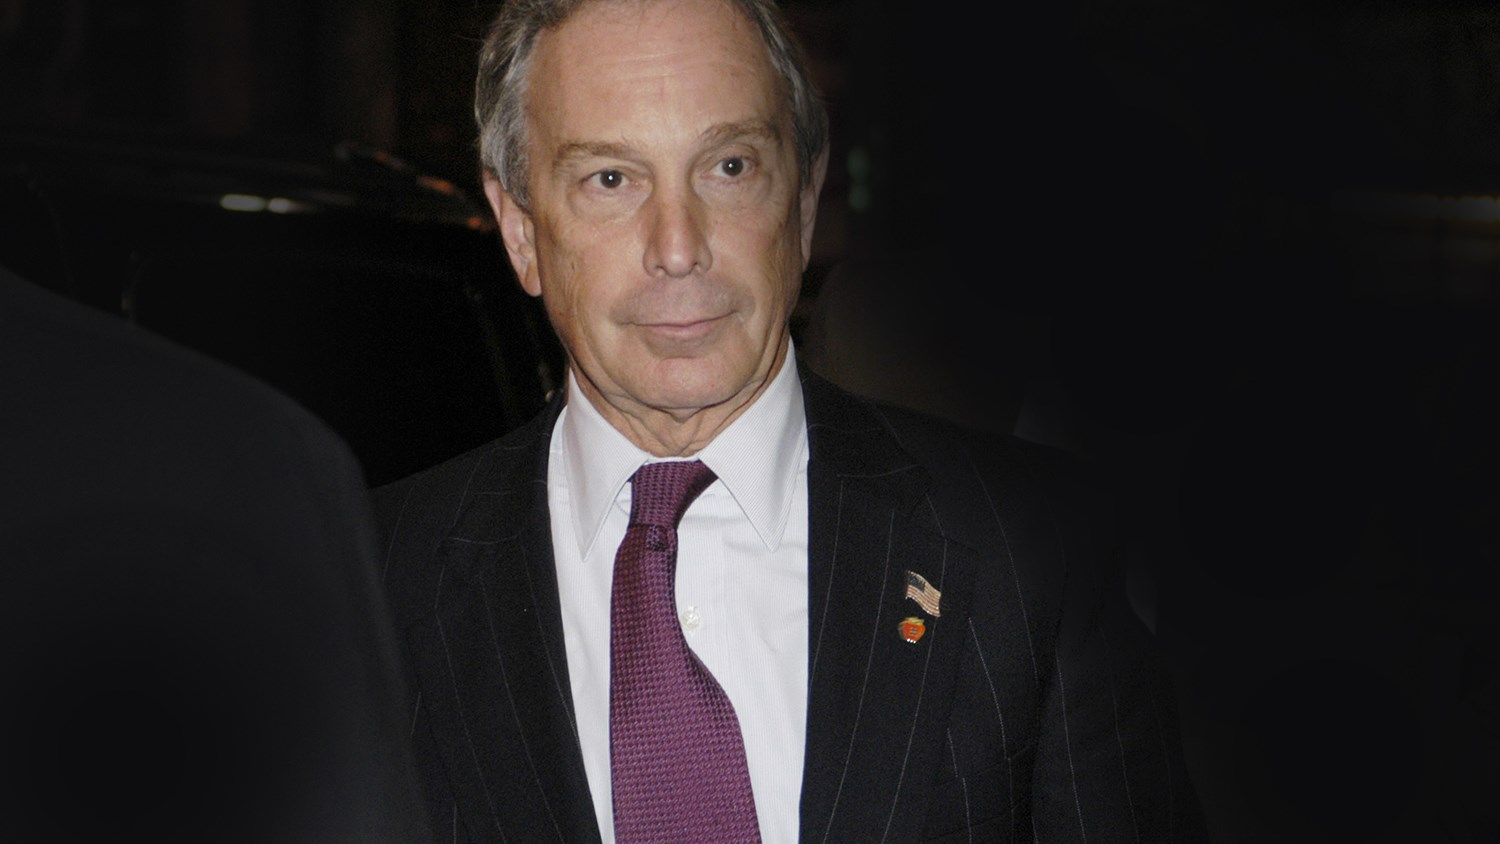 Former NY City mayor Michael Bloomberg is spending millions in an attempt to save faltering gubernatorial candidates in CT and MD